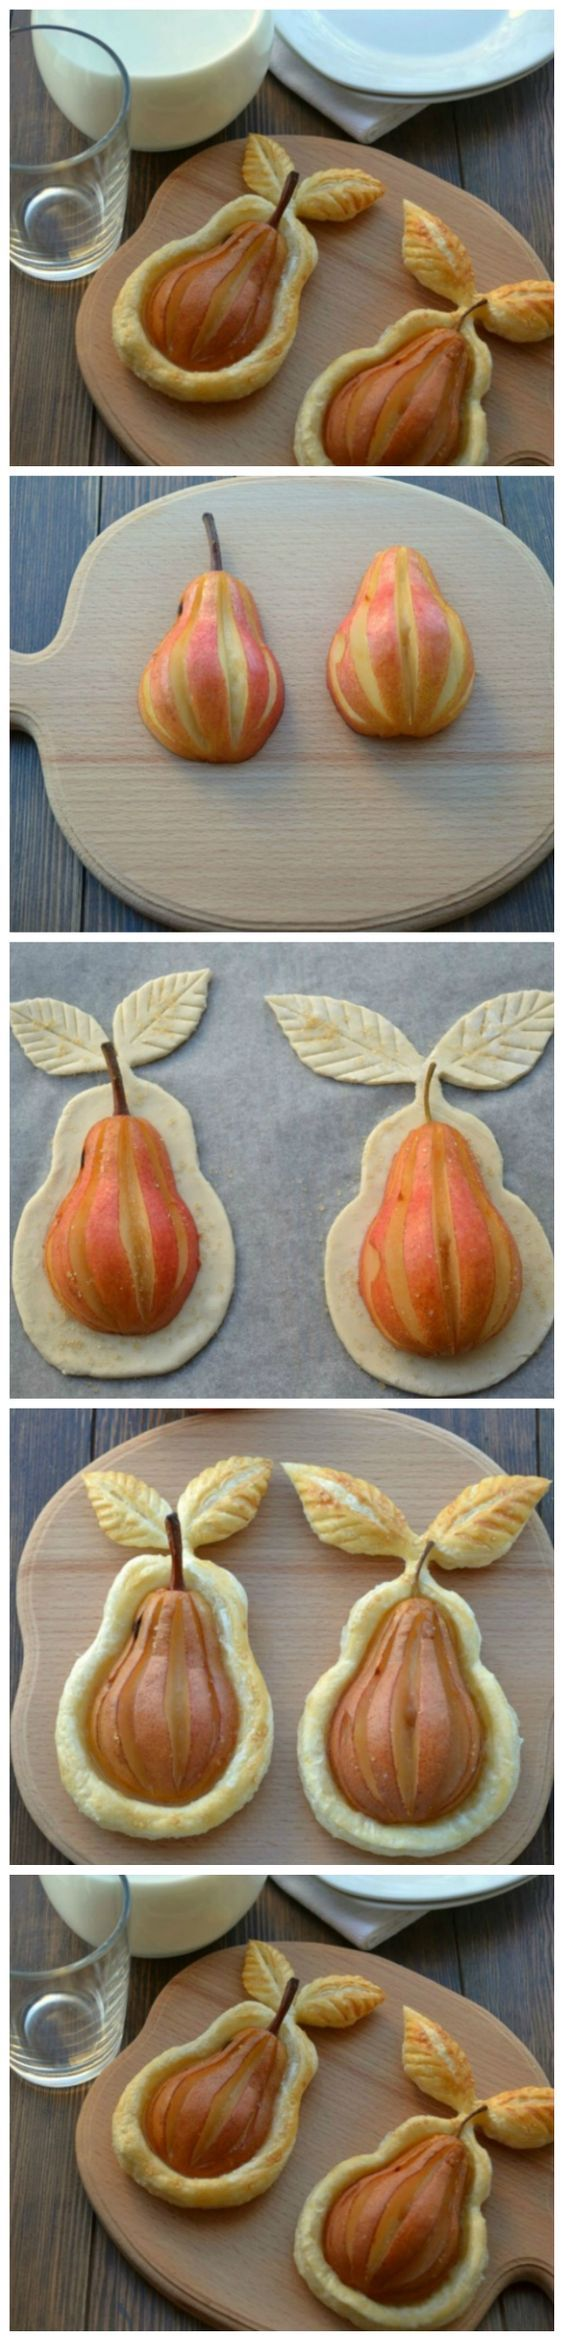 Pears in Puff Pastry Recipe: